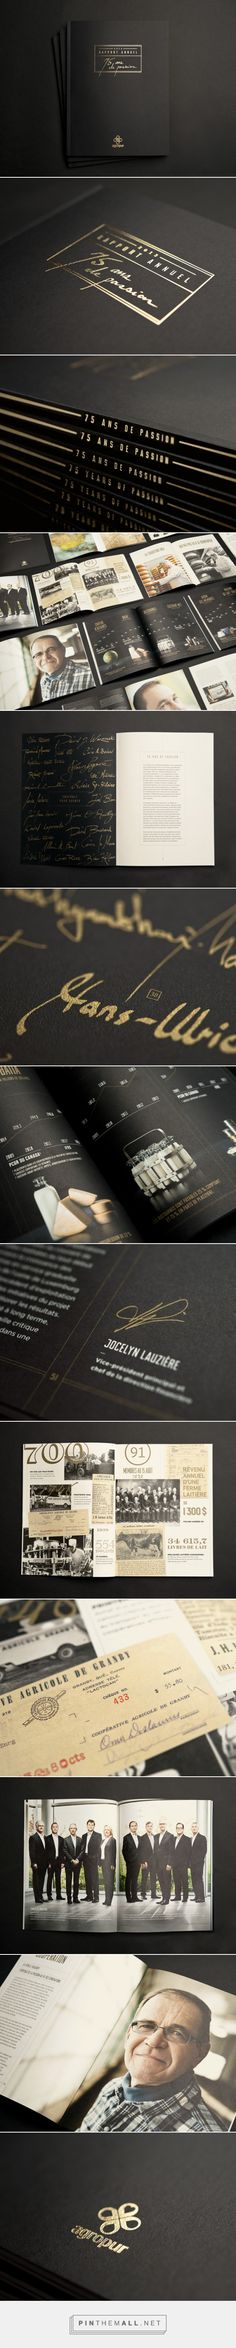 Agropur 2013 Annual Report | Agropur | Work | lg2boutique - created via http://pinthemall.net